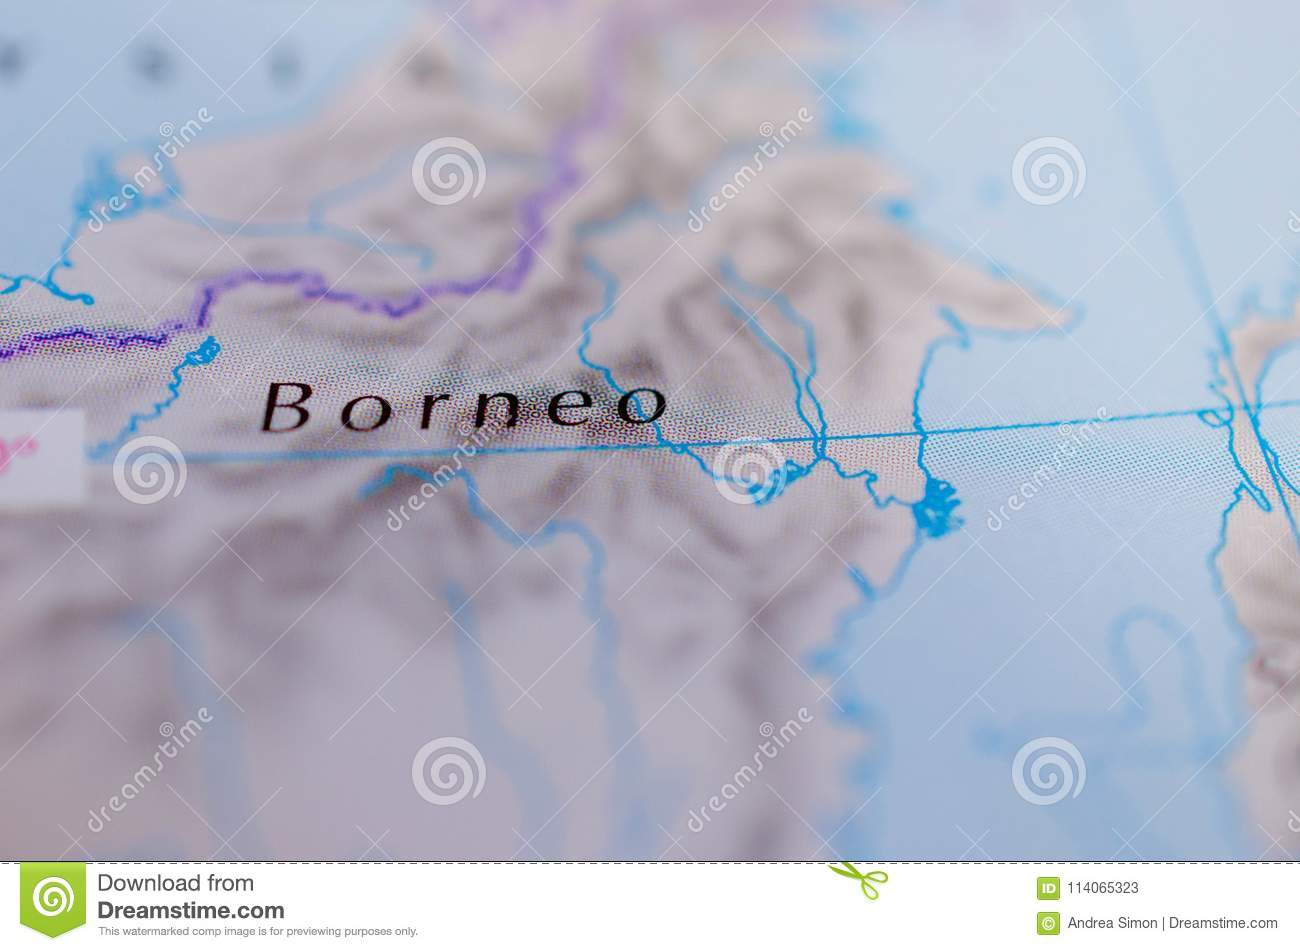 Borneo On Map Stock Image Image Of Kalimantan Directions 114065323